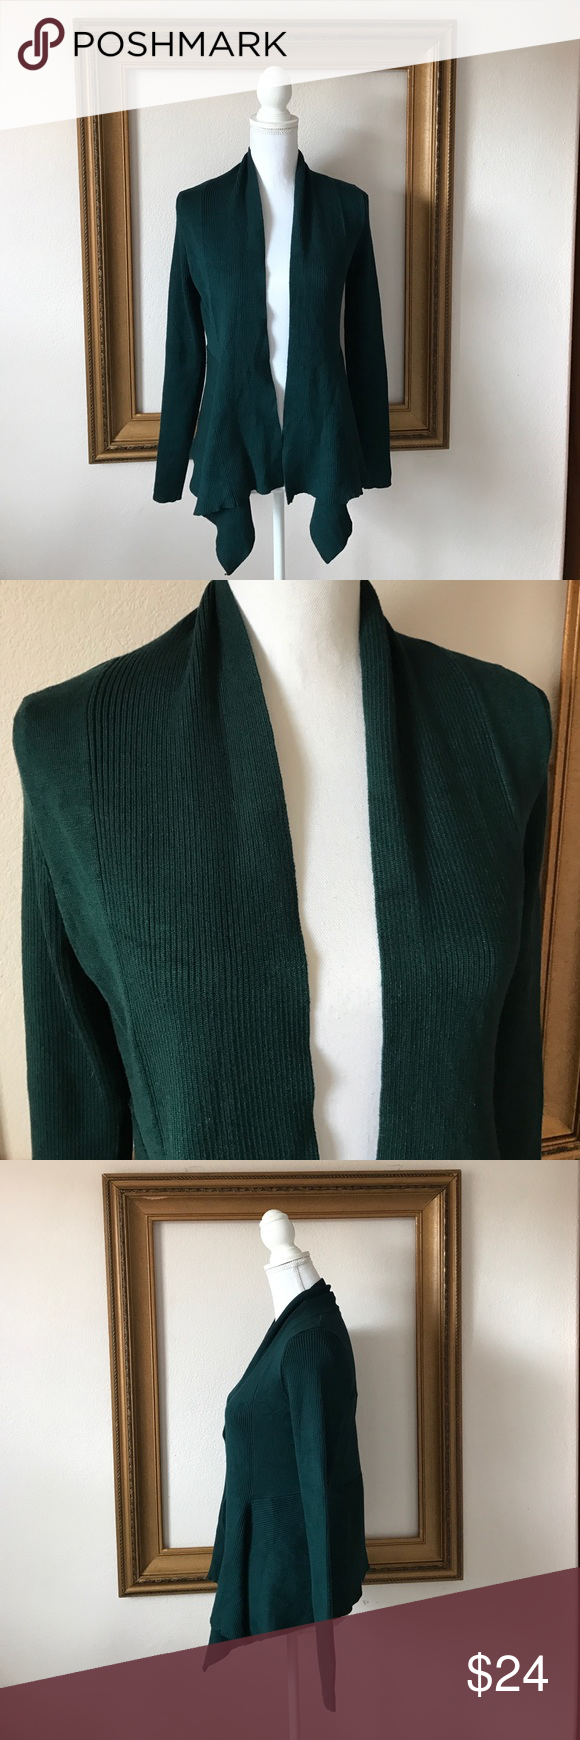 NWT 89th & Maddison forest green cardigan, 8 Super comfy, classic look. Wear to work with your pop of yellow, pink, or light bright floral for Spring! 89th & Madison Sweaters Cardigans